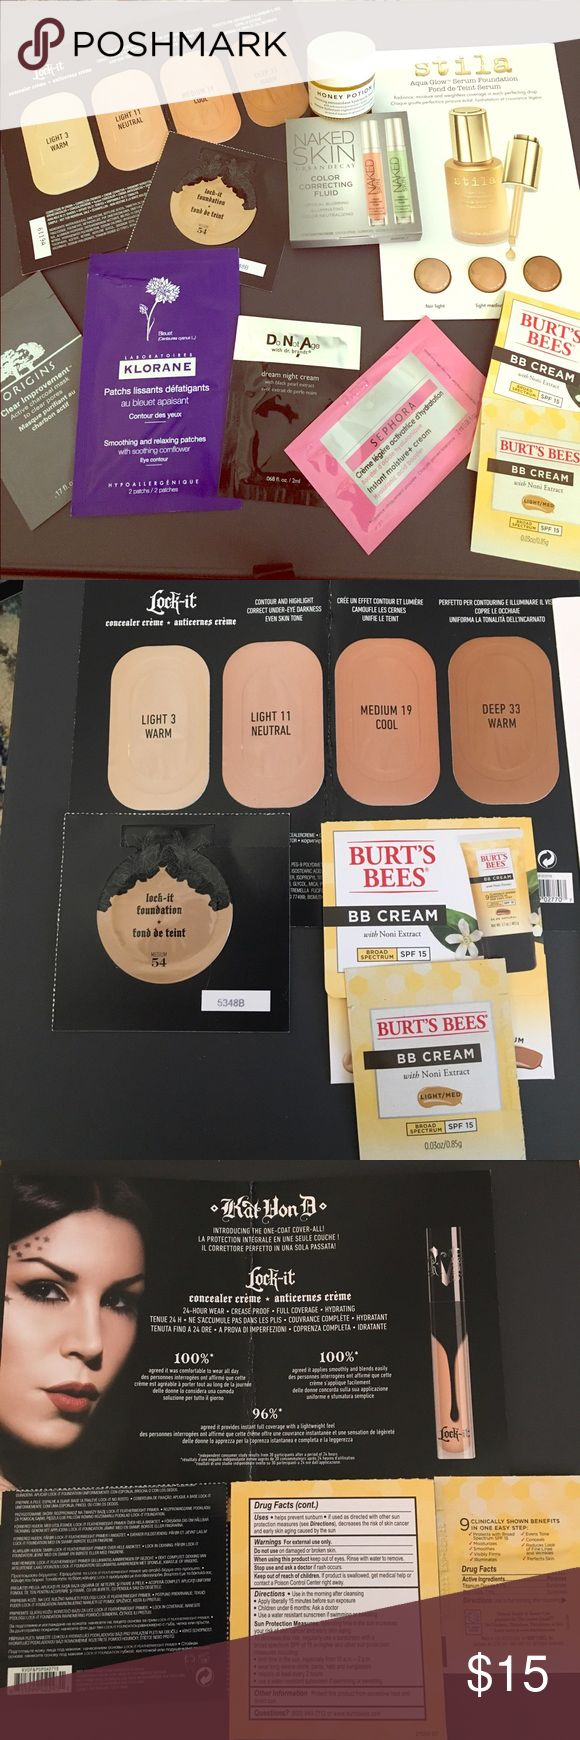 Foundation & skin care bundle! UD naked, Kat Von D Everything for beautiful skin! All brand new, never used skin care samples! Includes: Urban Decay Naked Skin Color Correcting Fluid, KAT VON D Lock-It Foundation & concealer, DR. BRANDT SKINCARE Do Not Age Dream Night Cream, FARMACY Honey Potion Renewing Antioxidant Hydration Mask with Echinacea GreenEnvy, & more!!! See photos for more details. Includes everything pictured, feel free to ask questions! Urban Decay Makeup Foundation